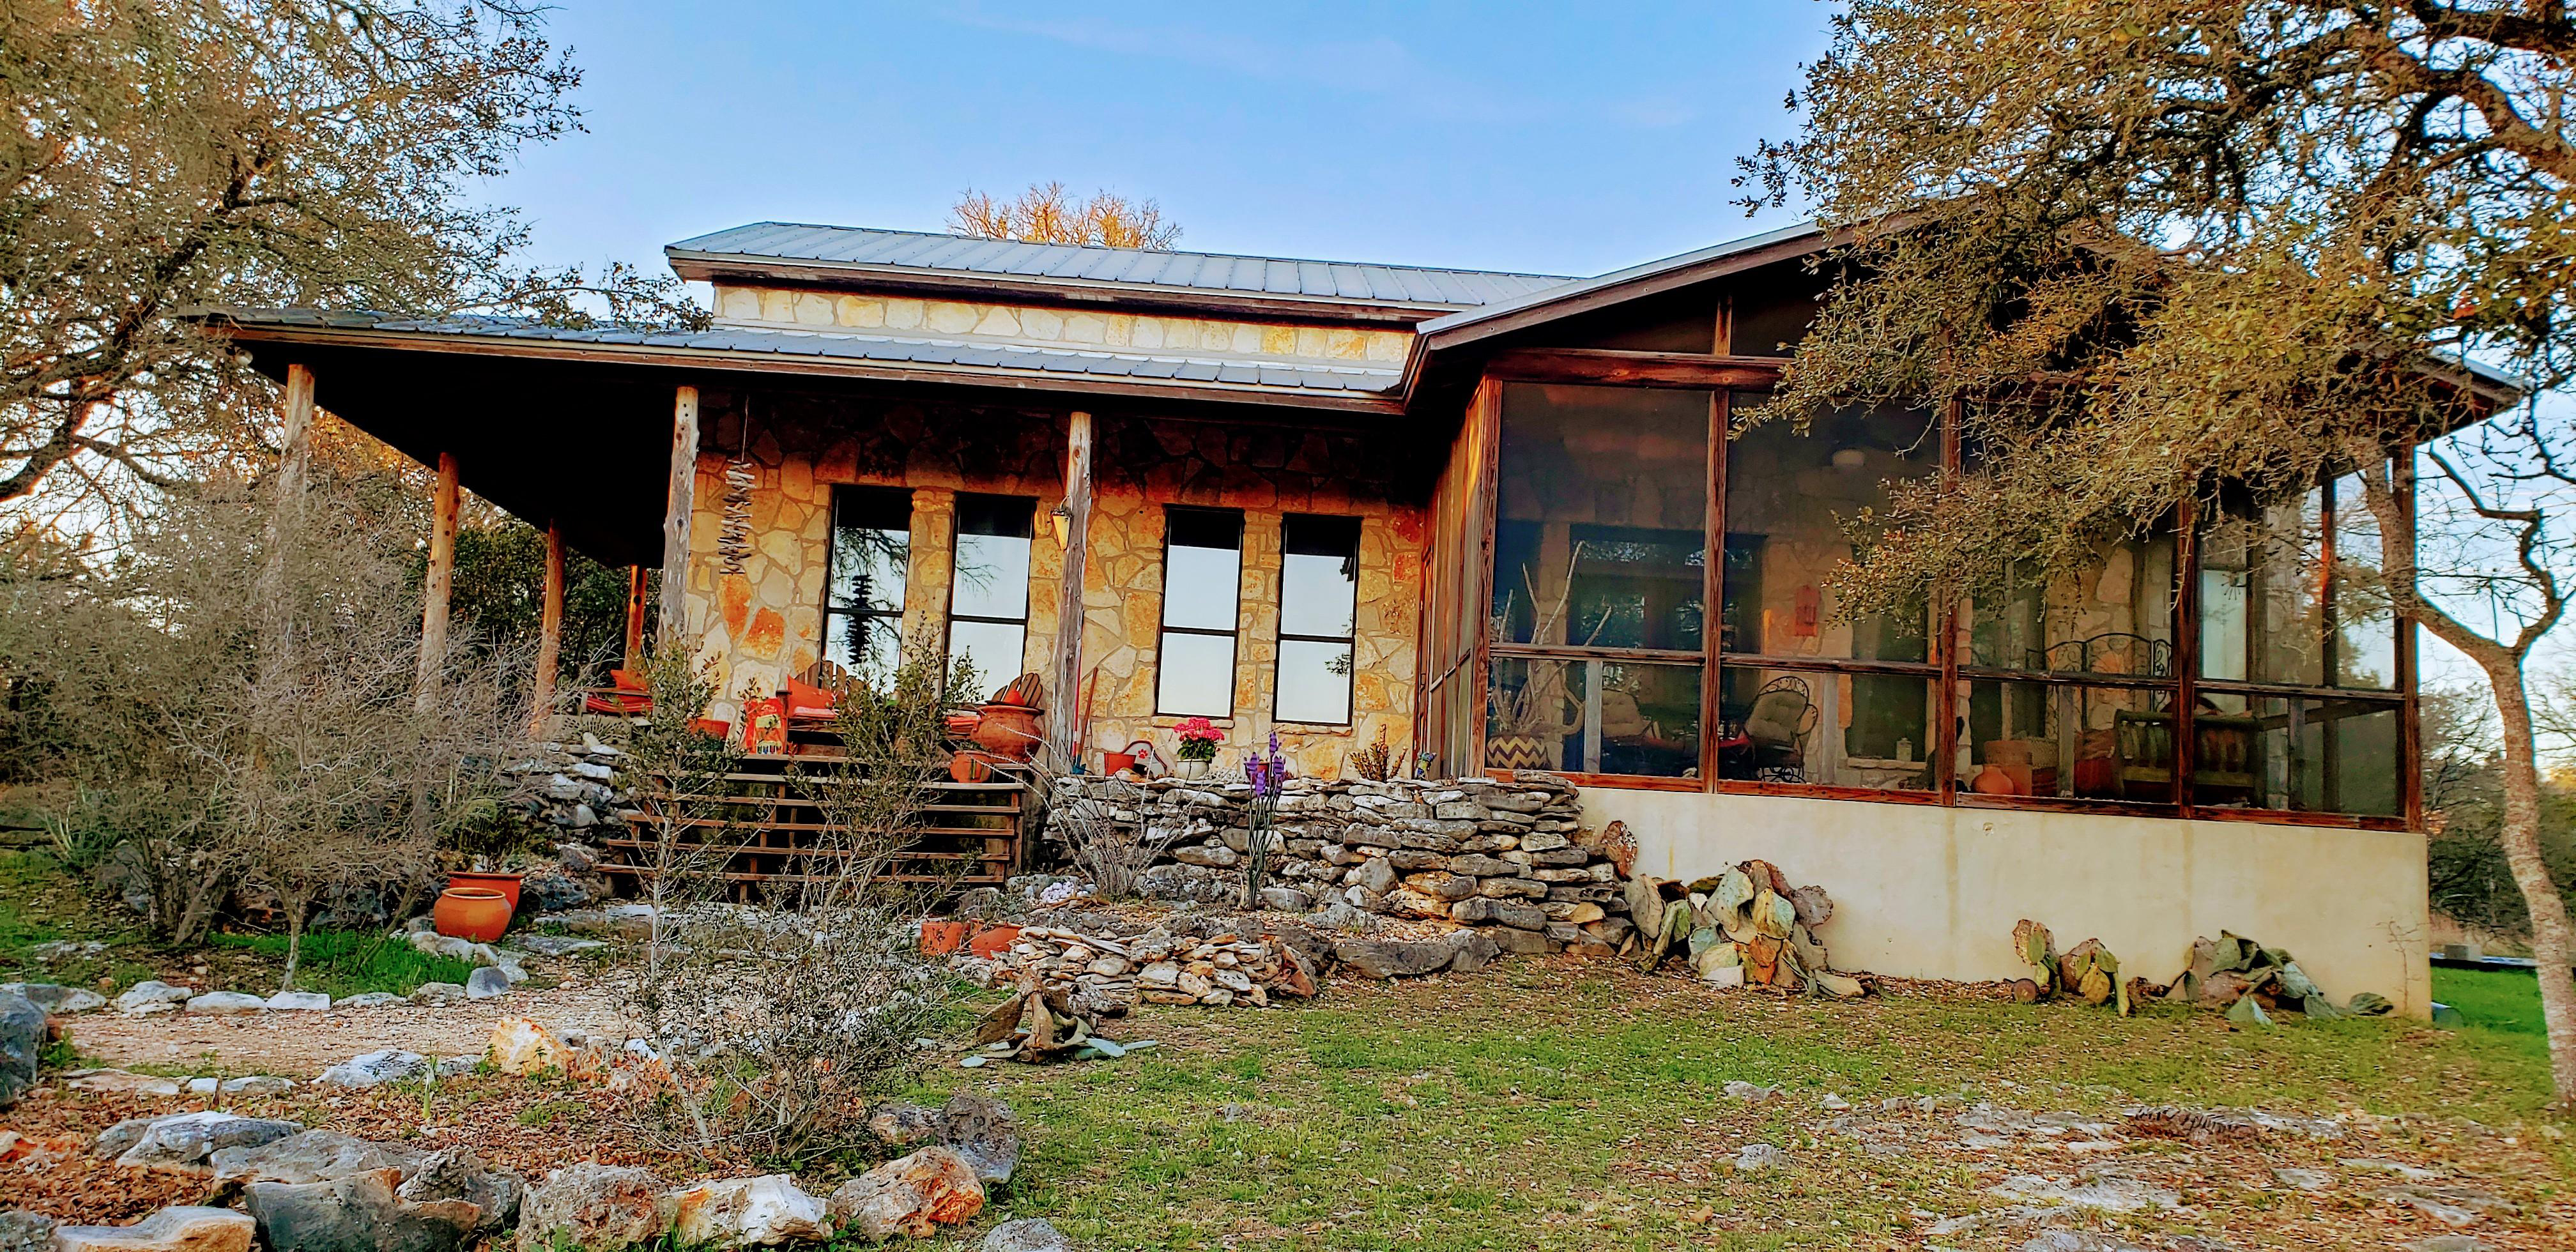 Mr. Taylor used limestone and timber to build his house because of their prevalence in the Hill Country landscape